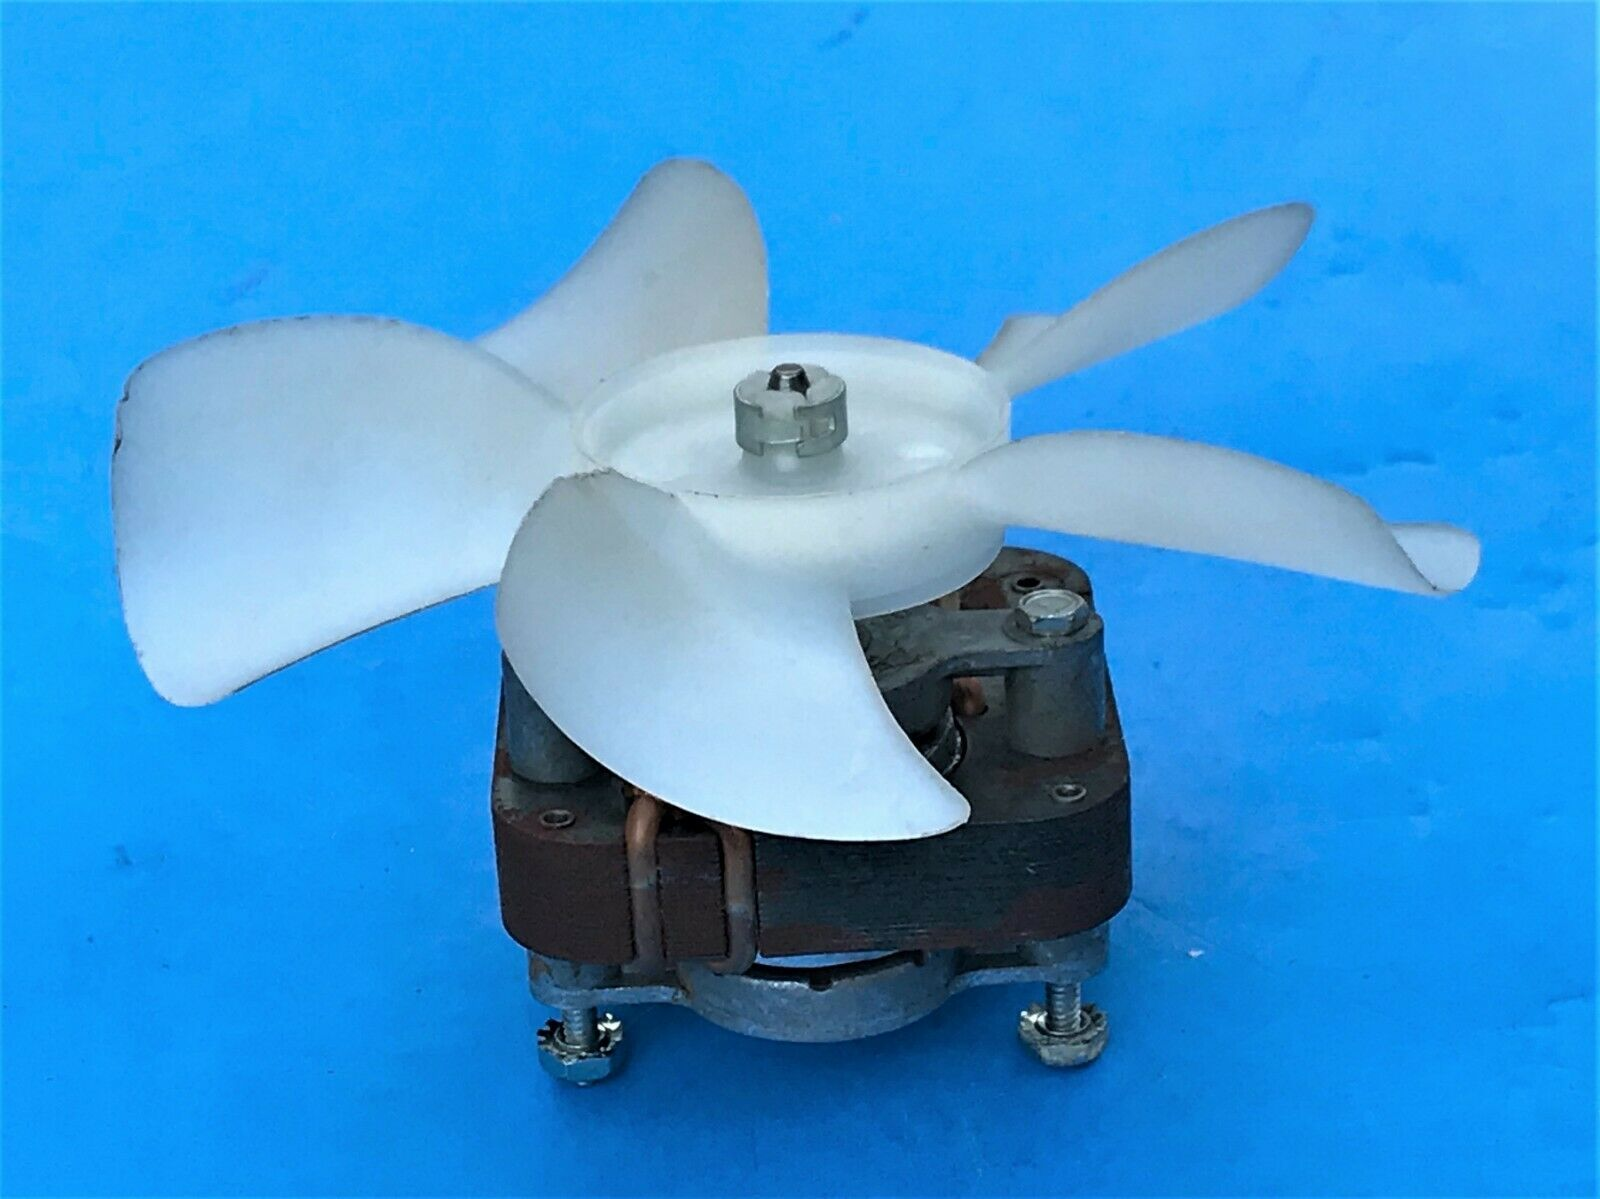 Elkay 98788C LEXEL CORP Item 48-B-79 Fan Motor Kit - $4.77